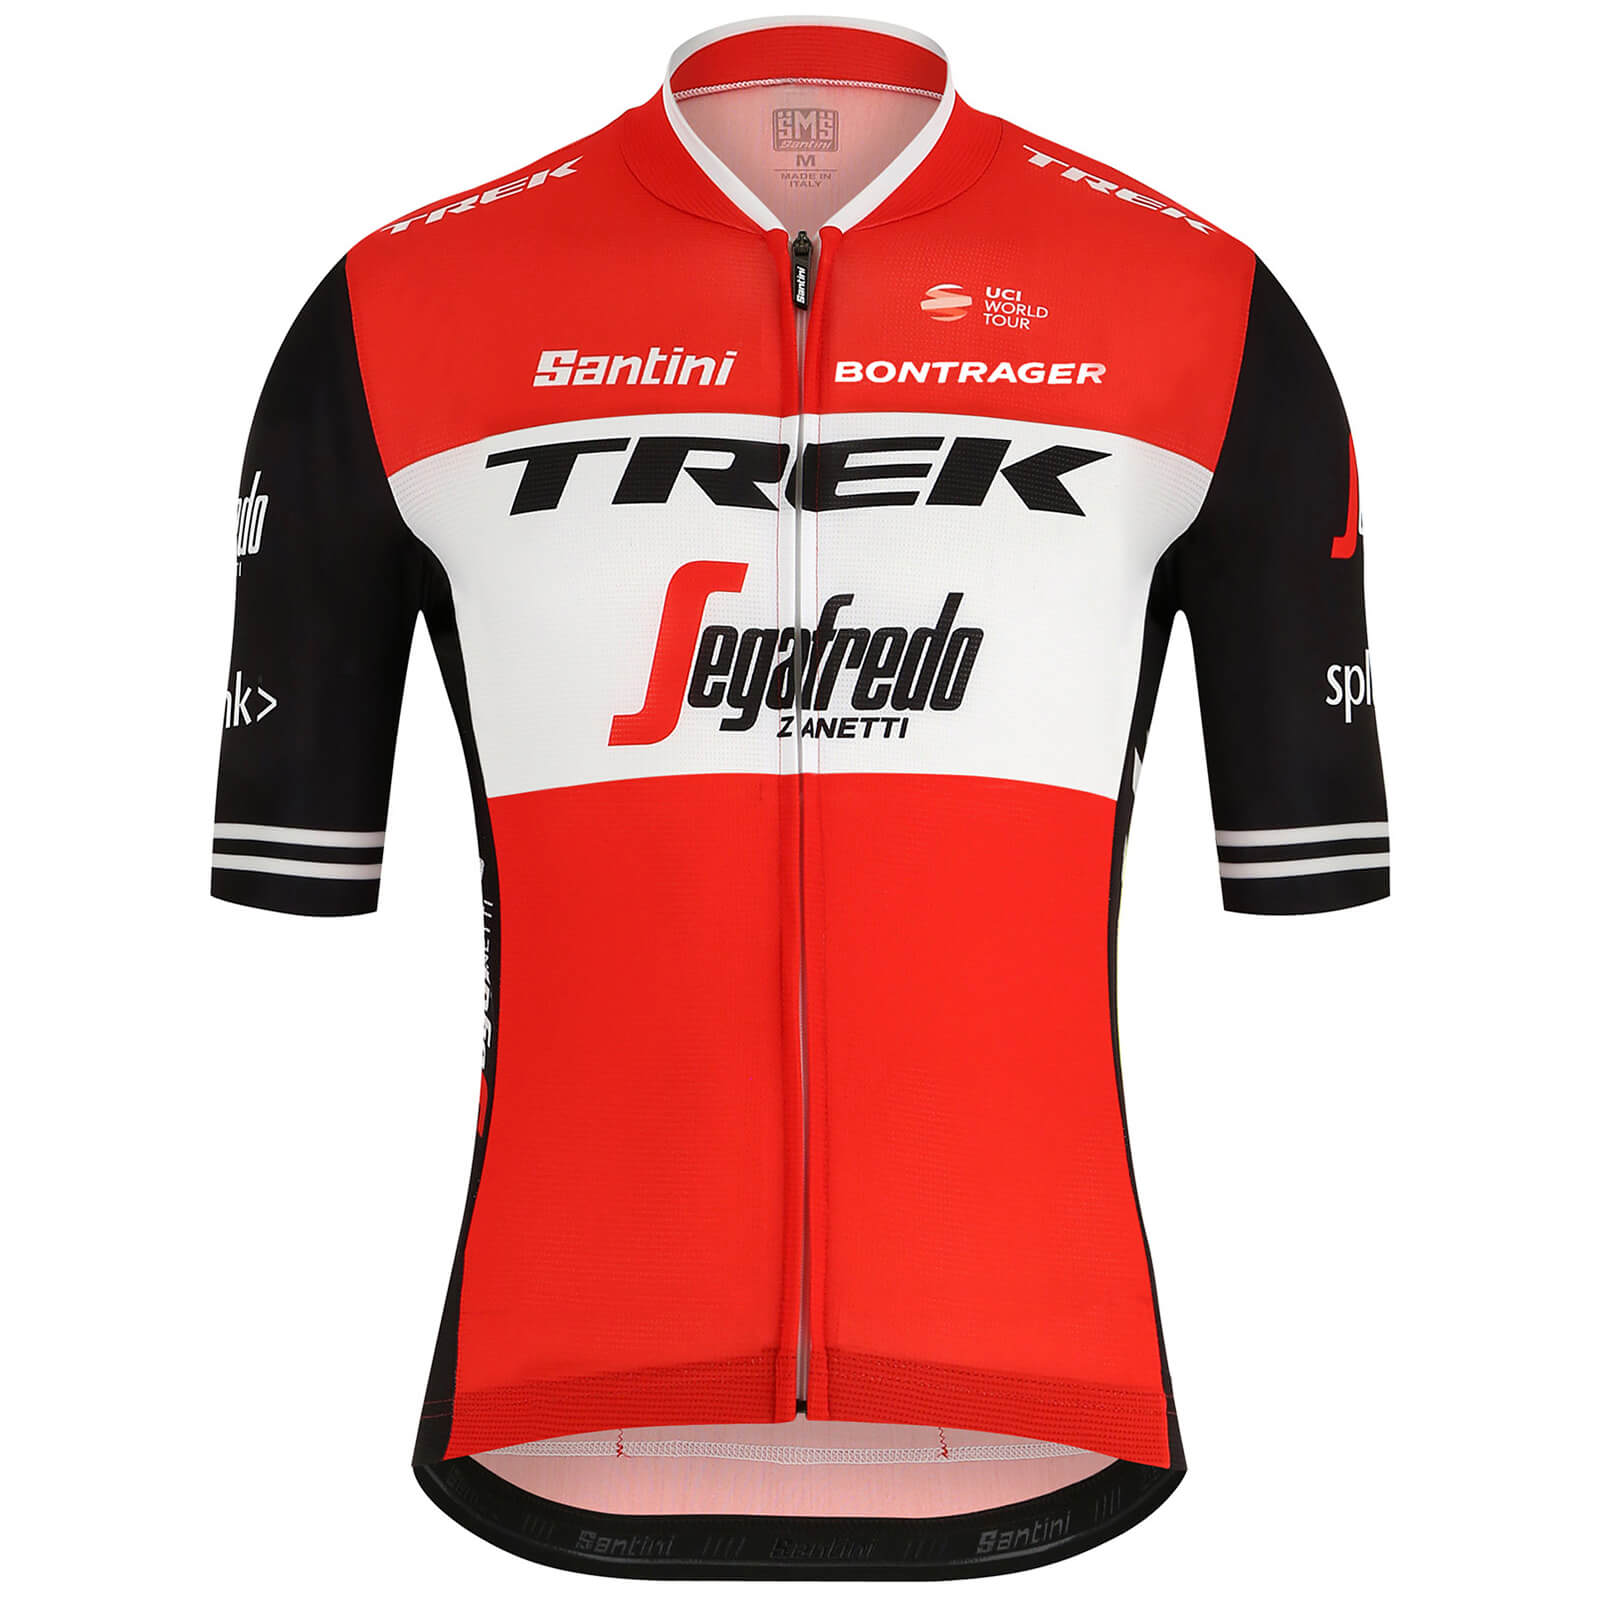 Santini Trek-Segafredo 2019 Pro Team Sleek 99 Race Jersey ... 262d39aa4